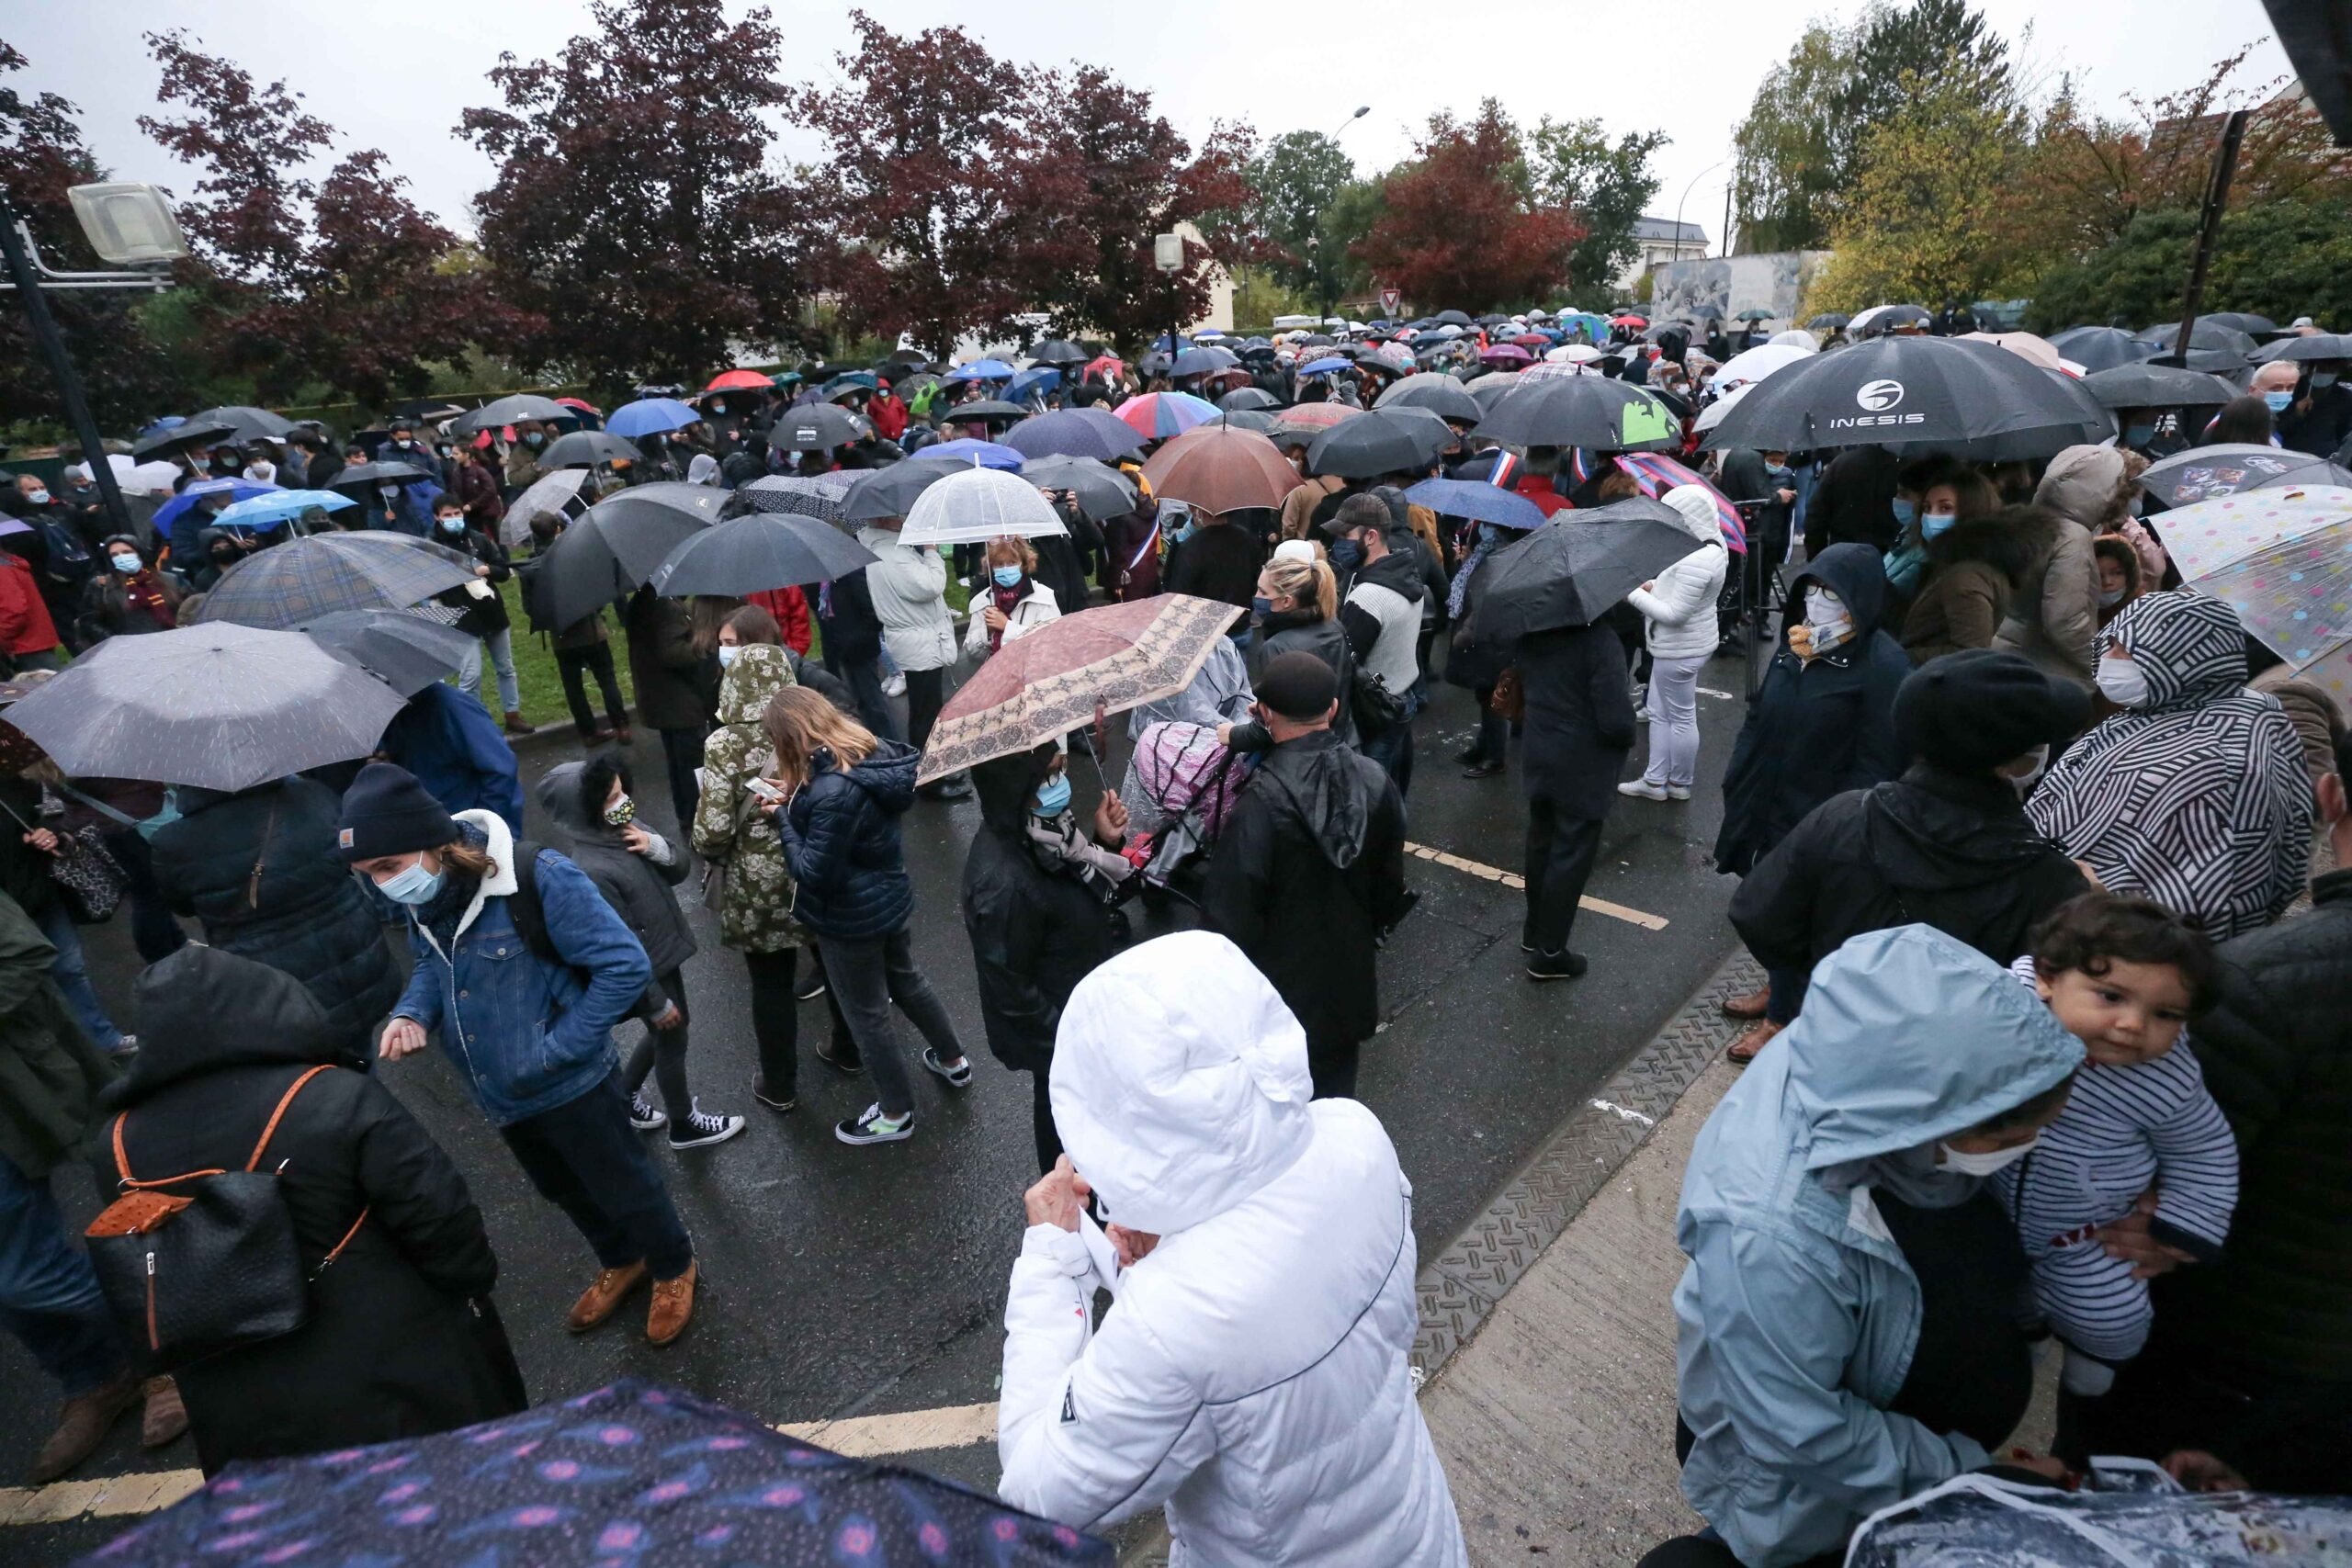 People attend the 'Marche Blanche' in Conflans-Sainte-Honorine, northwest of Paris, on October 20, 2020, in solidarity after a teacher was beheaded for showing pupils cartoons of the Prophet Mohammed. His murder in a Paris suburb on October 16 shocked the